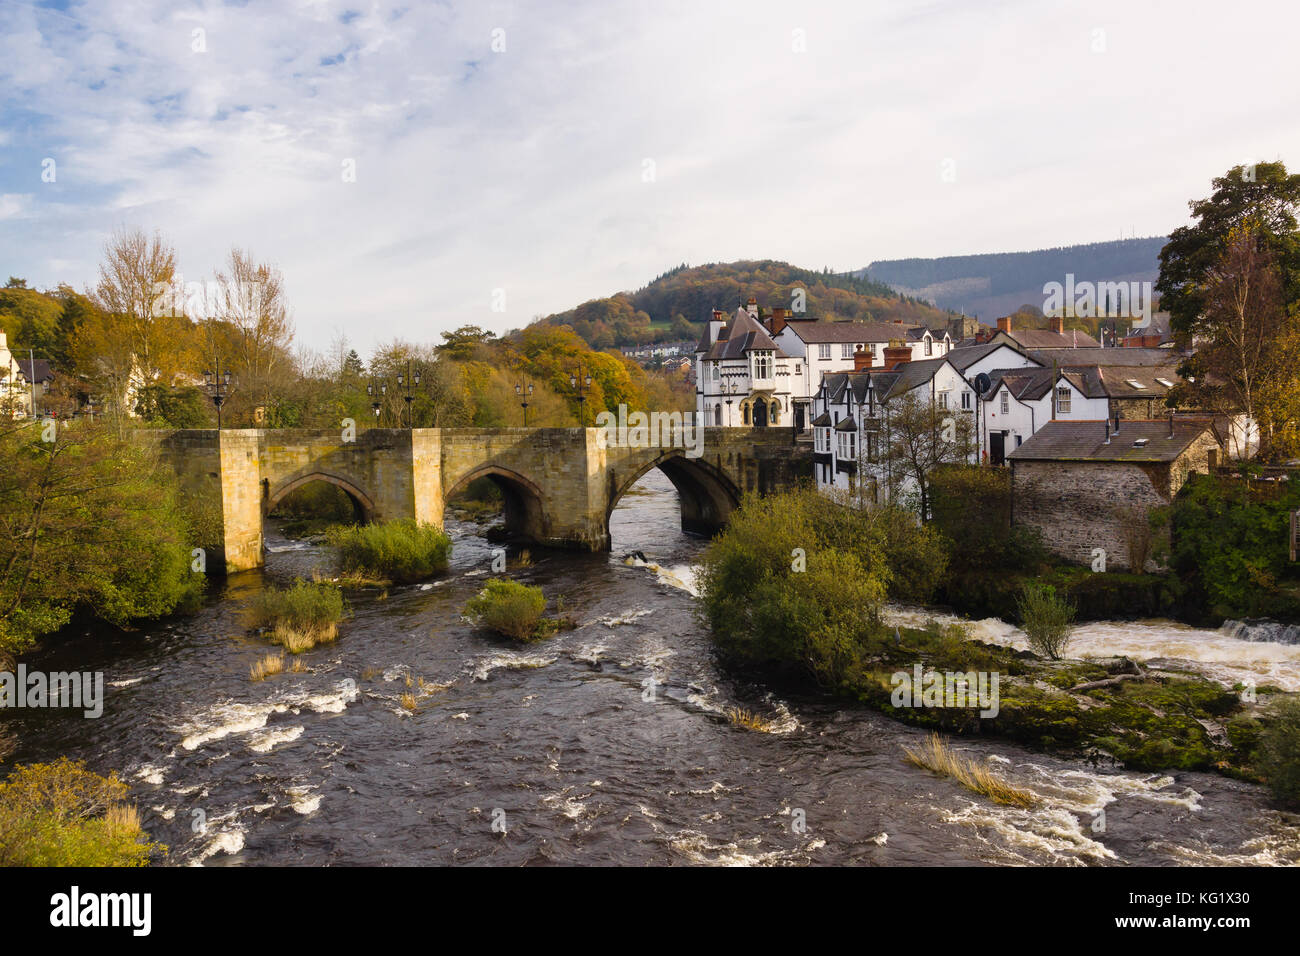 The Dee Bridge in Llangollen one of the Seven Wonders of Wales built in 16th century it is the main crossing point Stock Photo